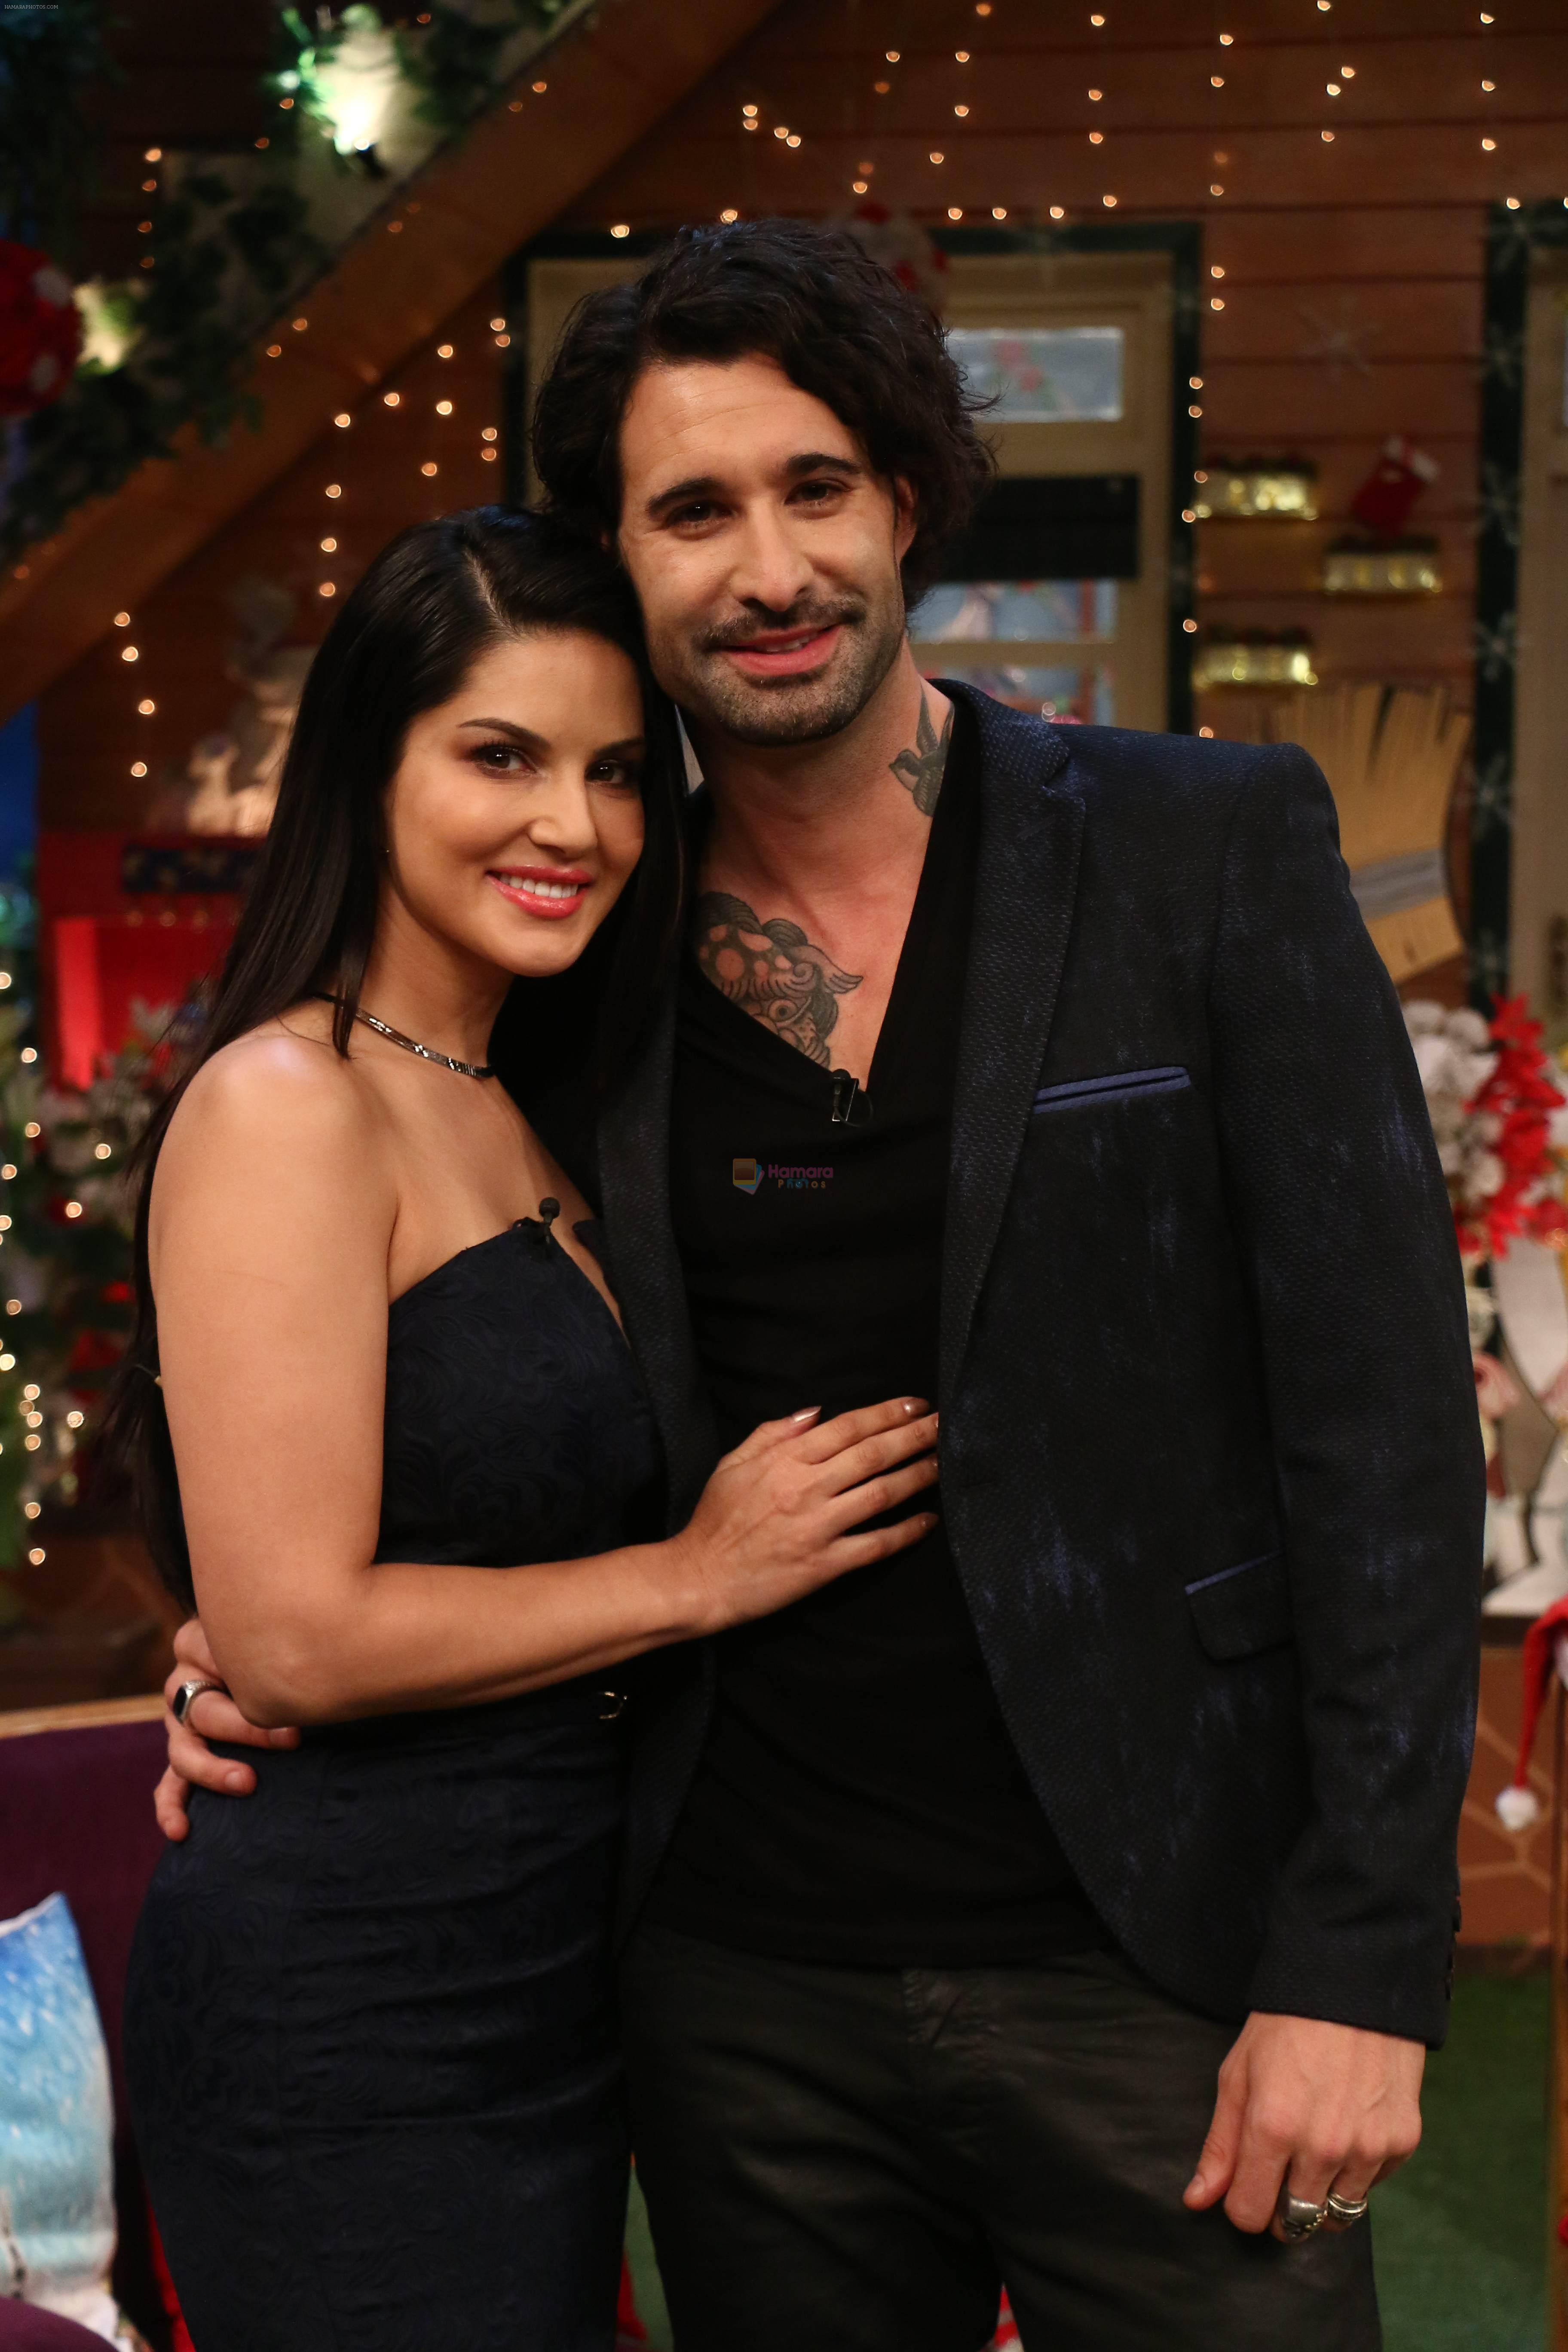 Sunny Leone and her husband Daniel Weber on the sets of The Kapil Sharma Show on 24th Dec 2016